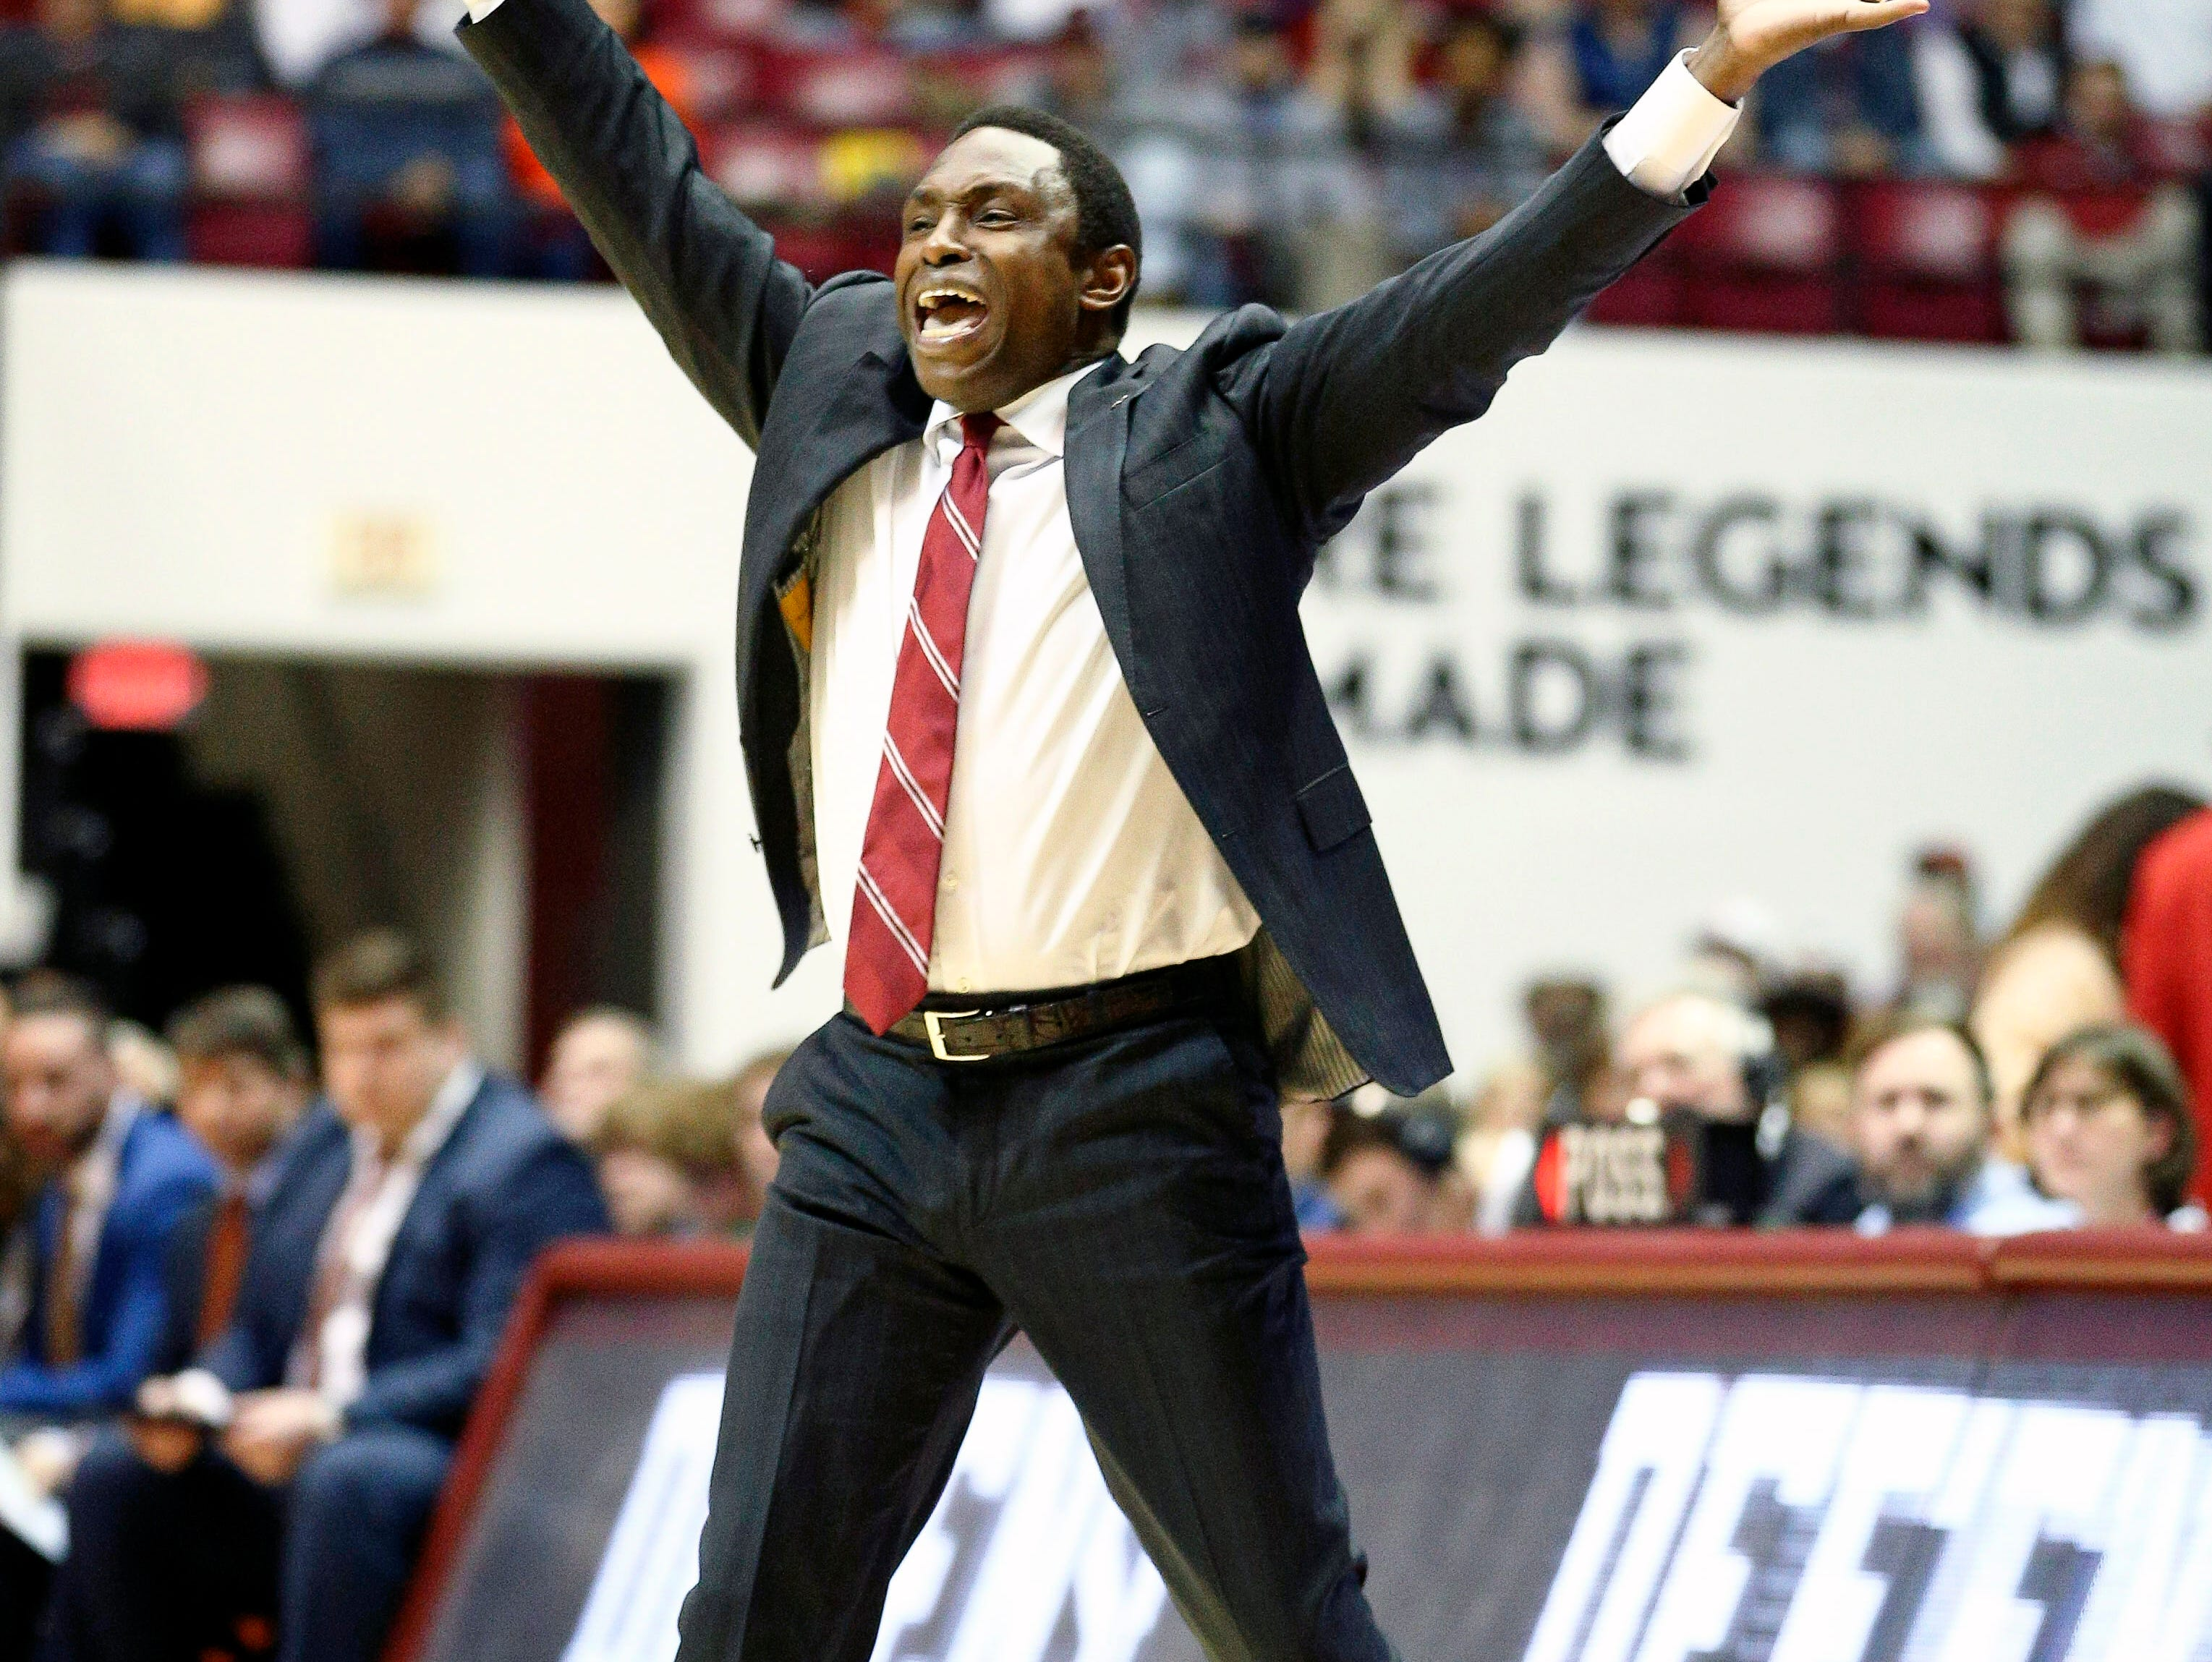 Mar 5, 2019; Tuscaloosa, AL, USA; Alabama Crimson Tide head coach Avery Johnson reacts to his teams play during the first half against Auburn Tigers at Coleman Coliseum. Mandatory Credit: Marvin Gentry-USA TODAY Sports